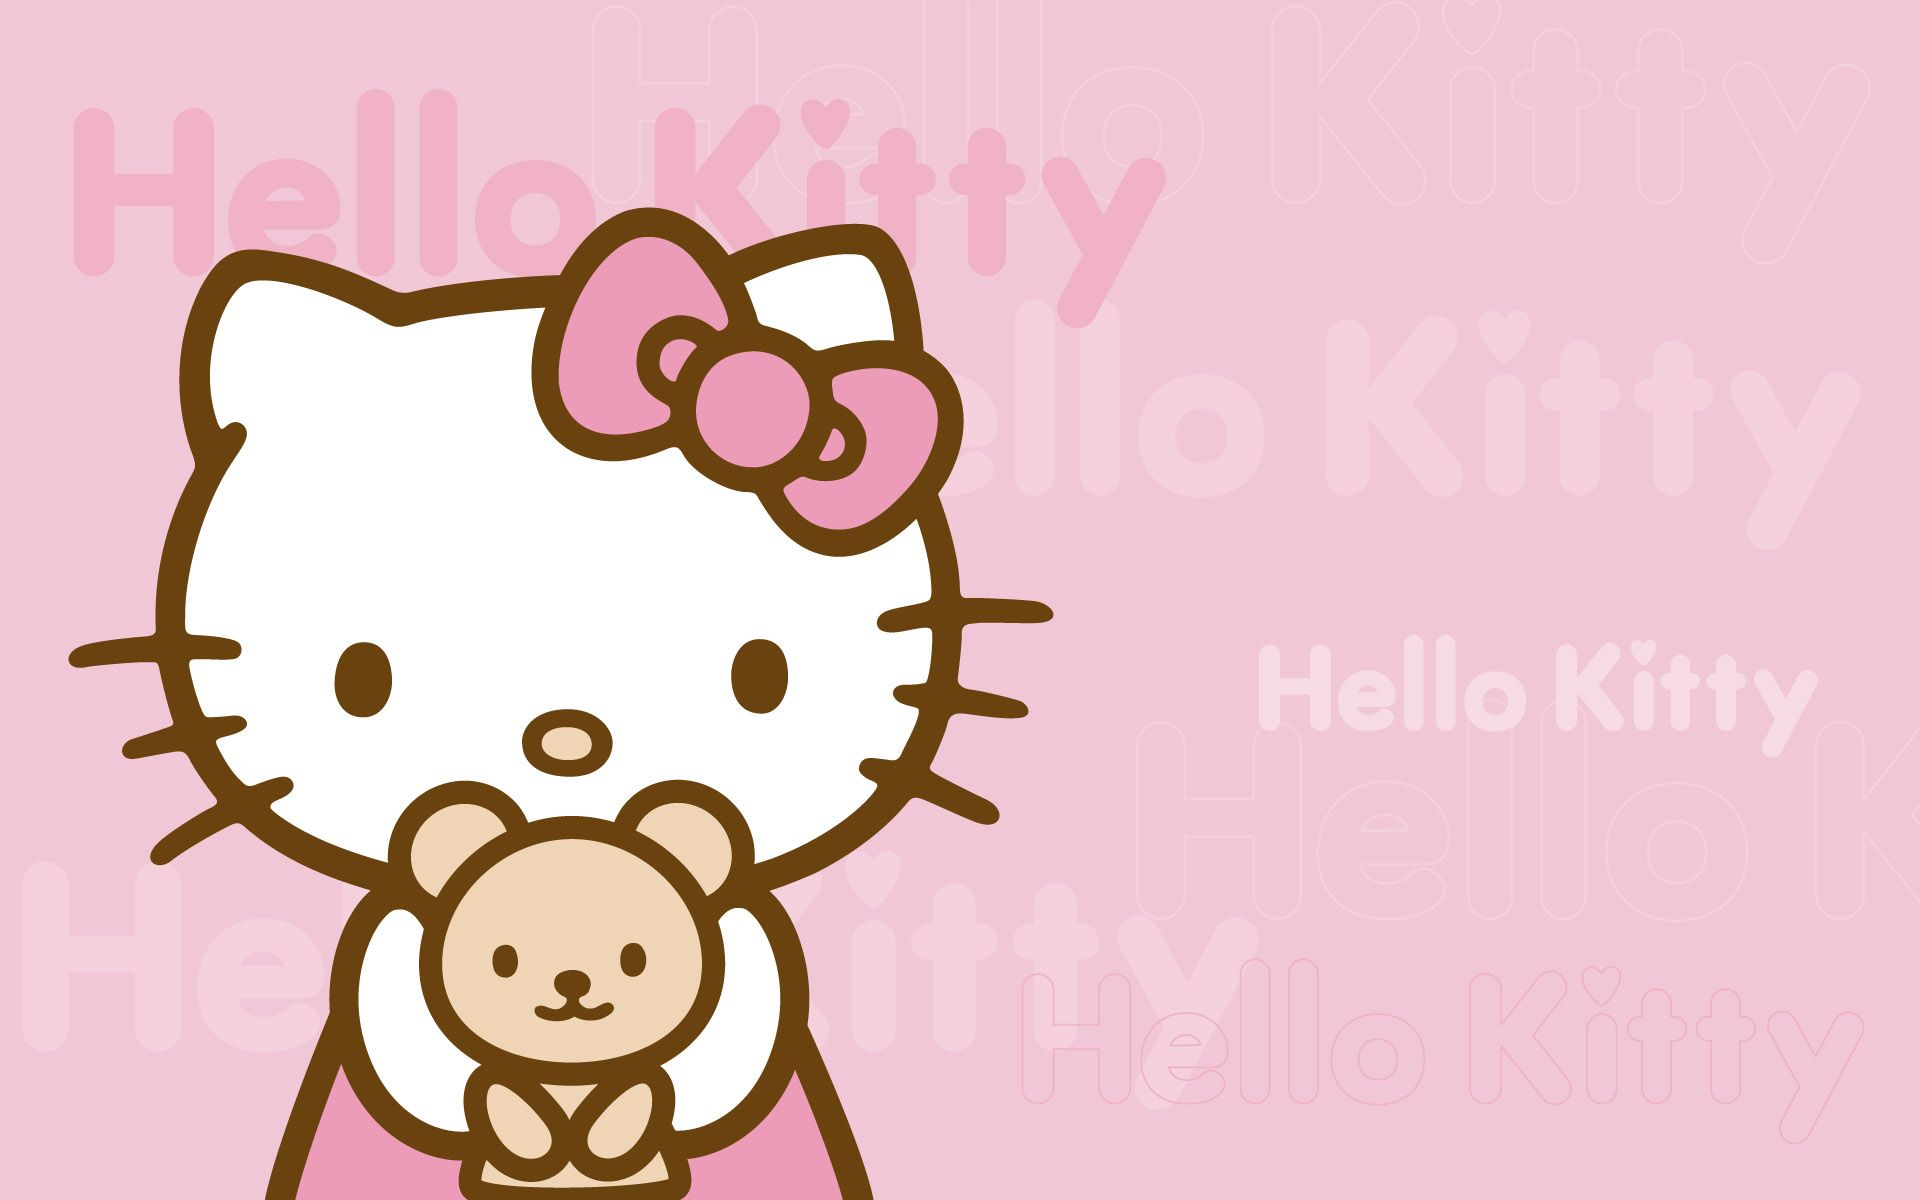 New Hello Kitty Wallpapers Hello Kitty Wallpapers   Part 3 1920x1200